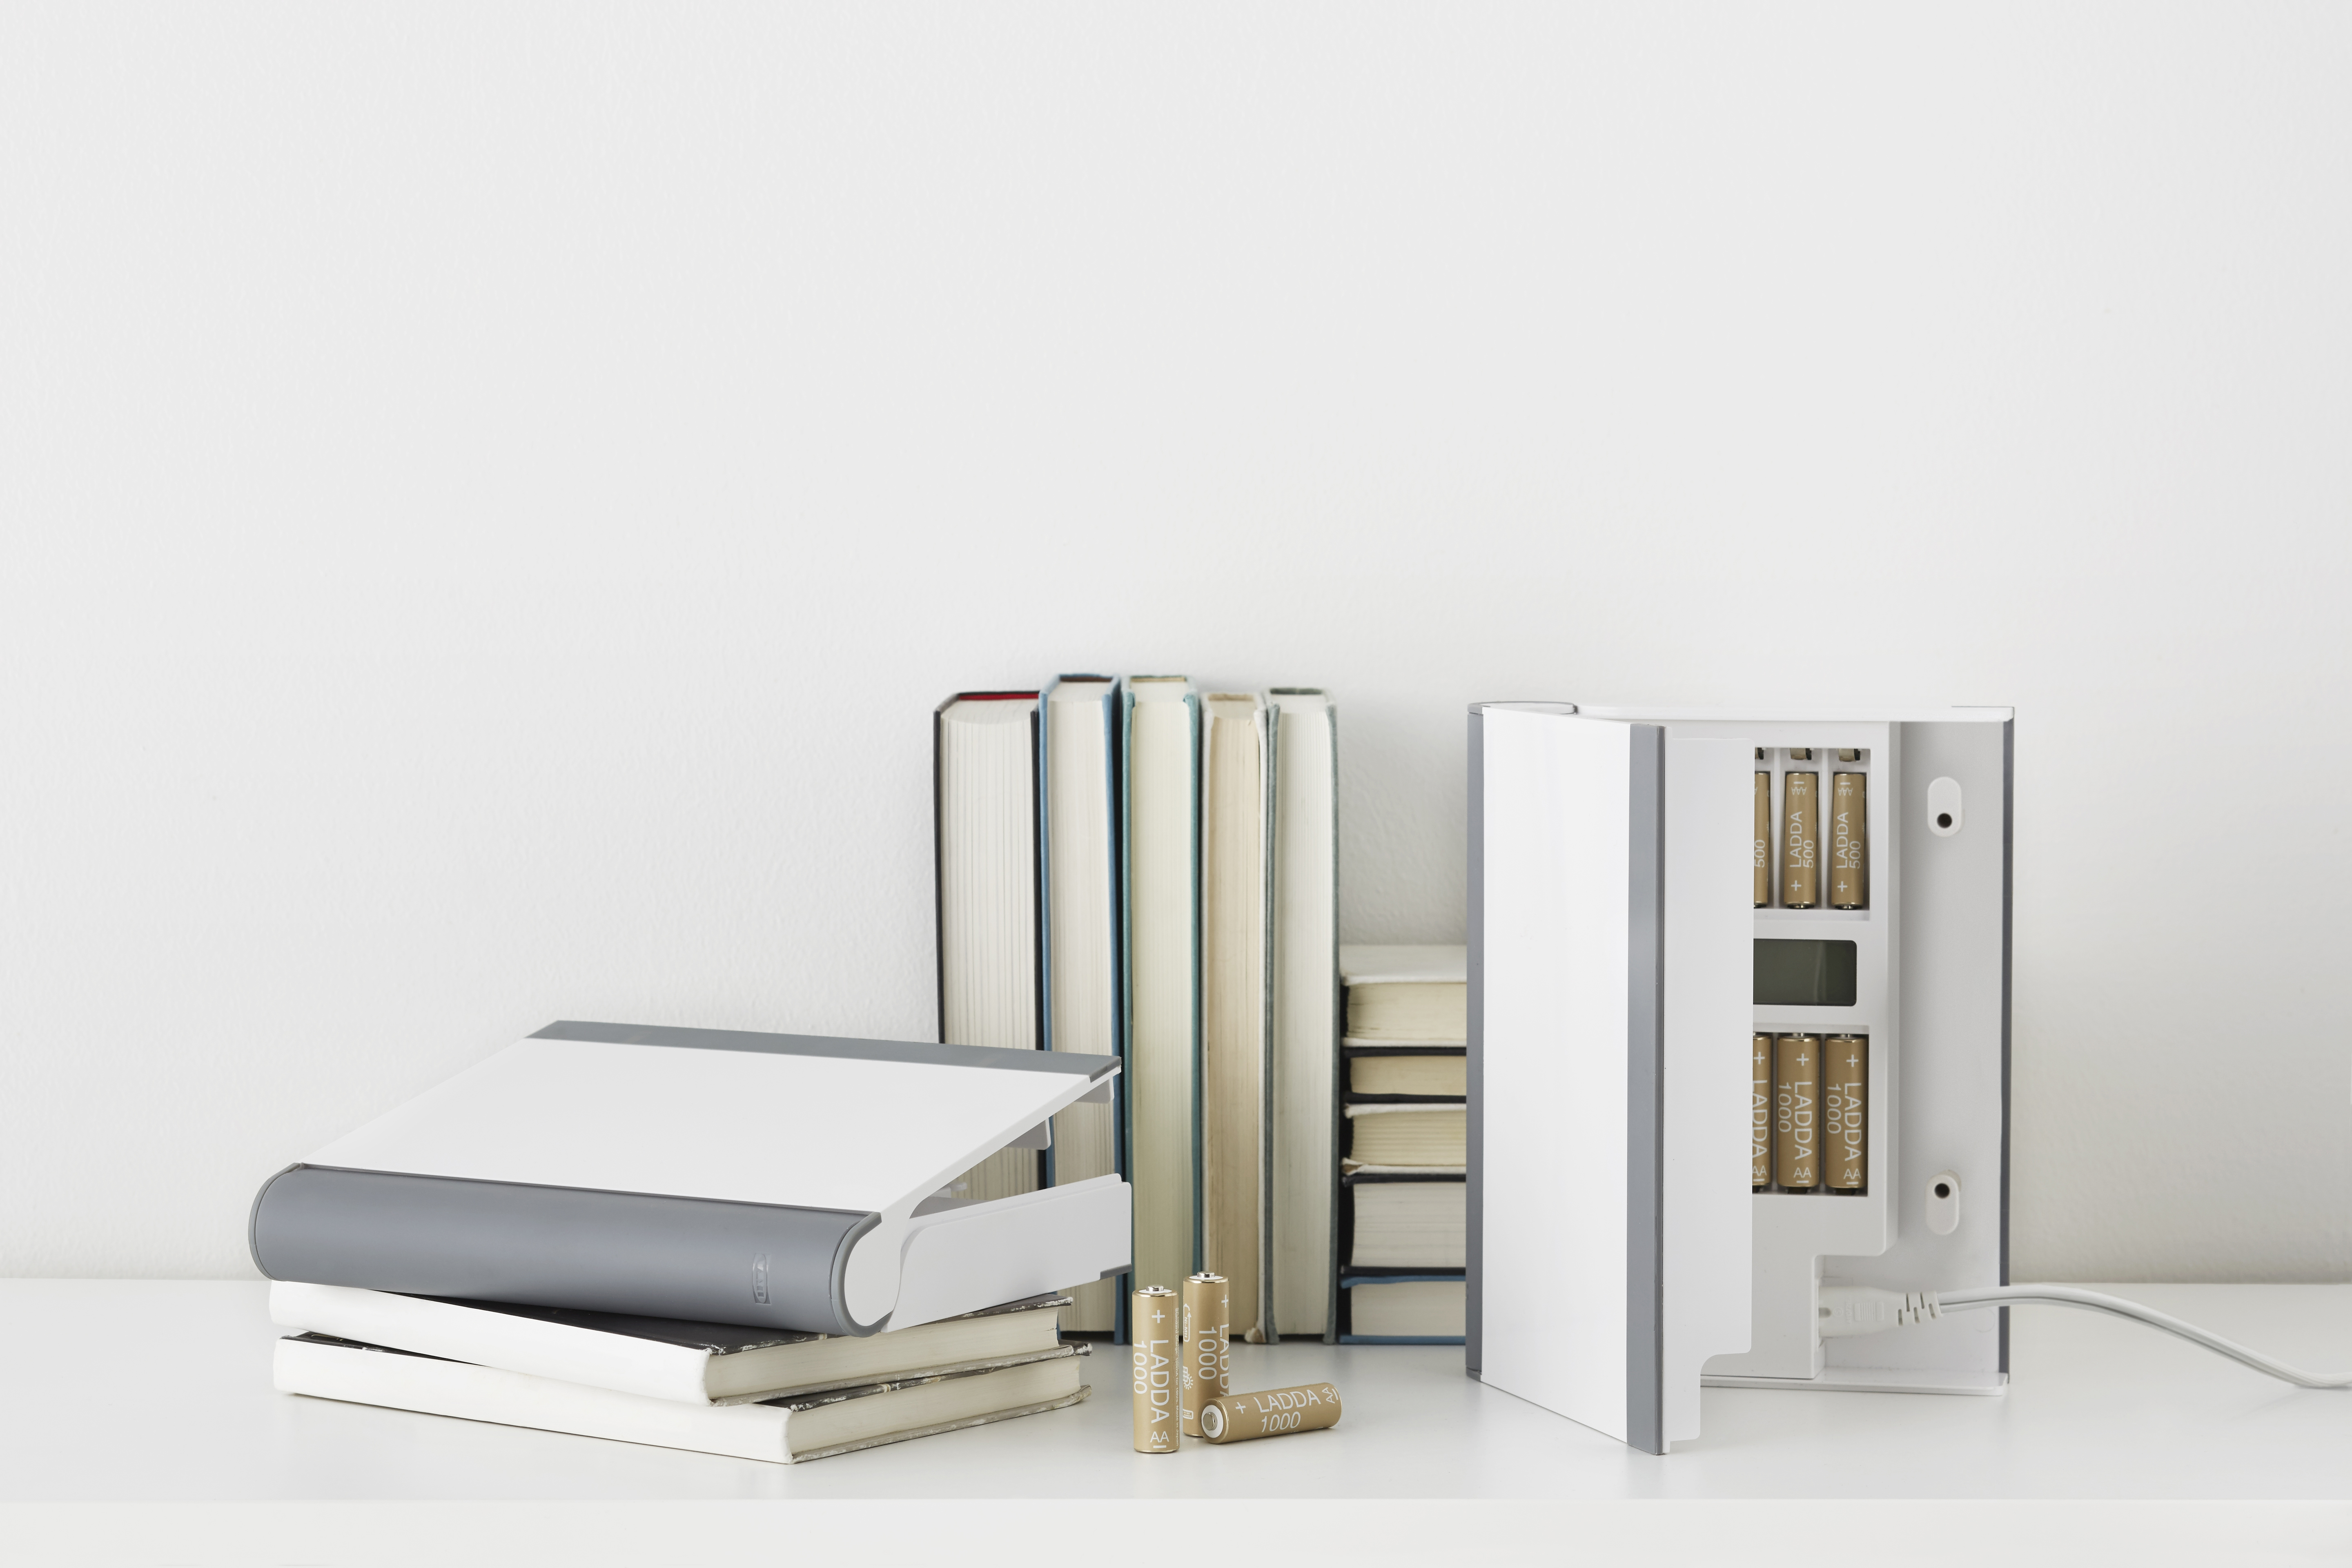 Stylish rechargeable batteries: IKEA launches new range - STORHOGEN battery charger can be disguised as a book to blend seamlessly into your home